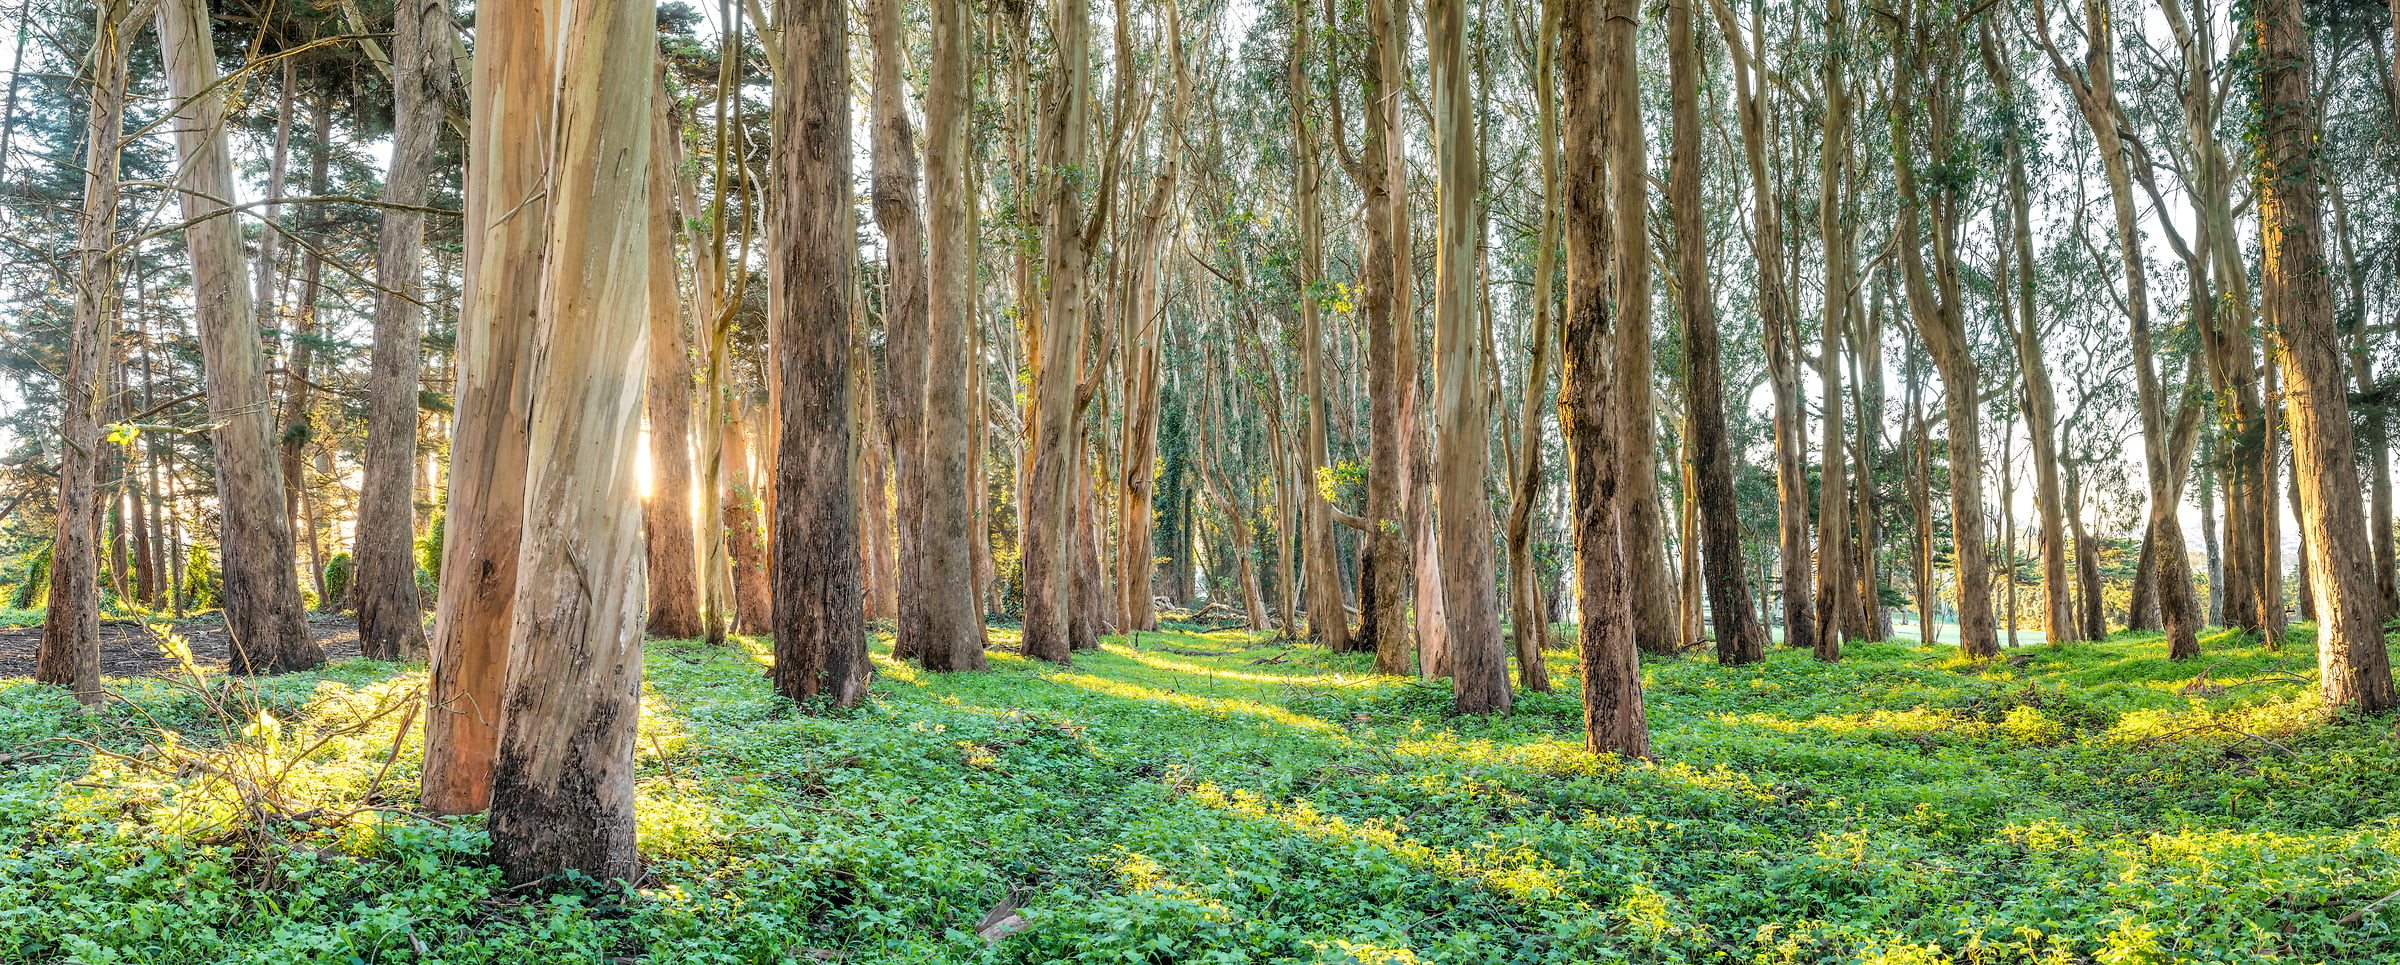 A very high resolution, large-format VAST photo print of eucalyptus trees in the Presidio of San Francisco; fine art nature photo created by Justin Katz in California